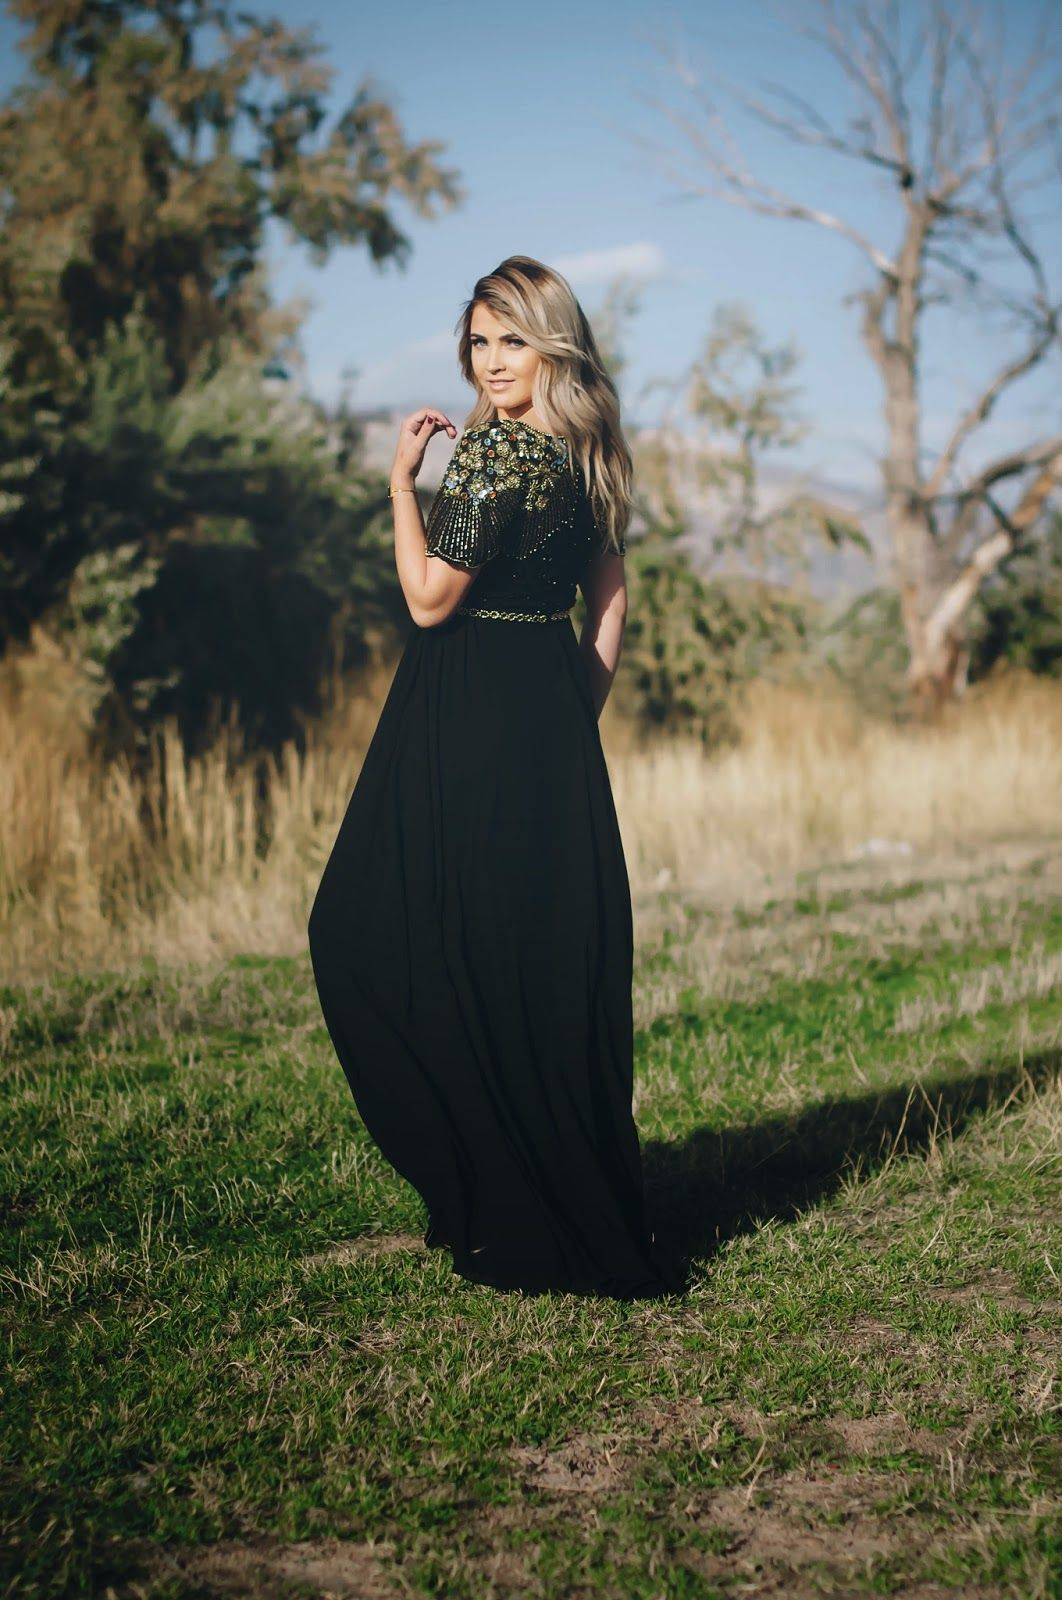 Cara loren looking back dress me up pinterest cara loren